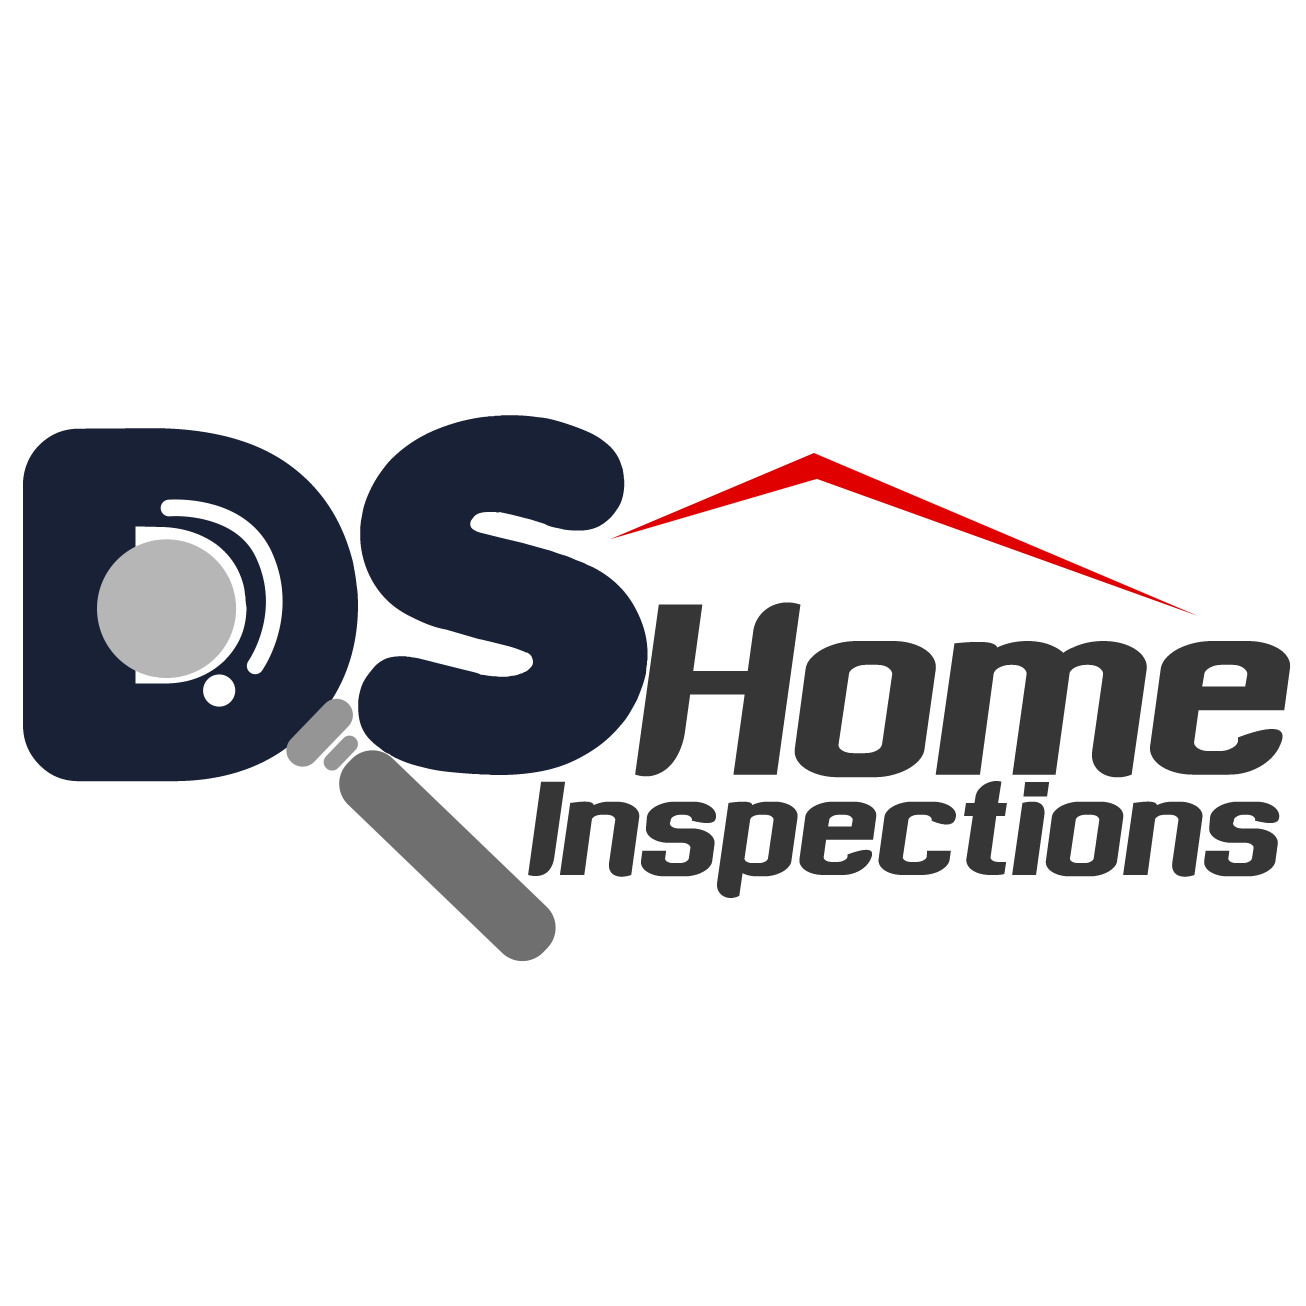 Ds home inspections haughton louisiana la for B home inspections